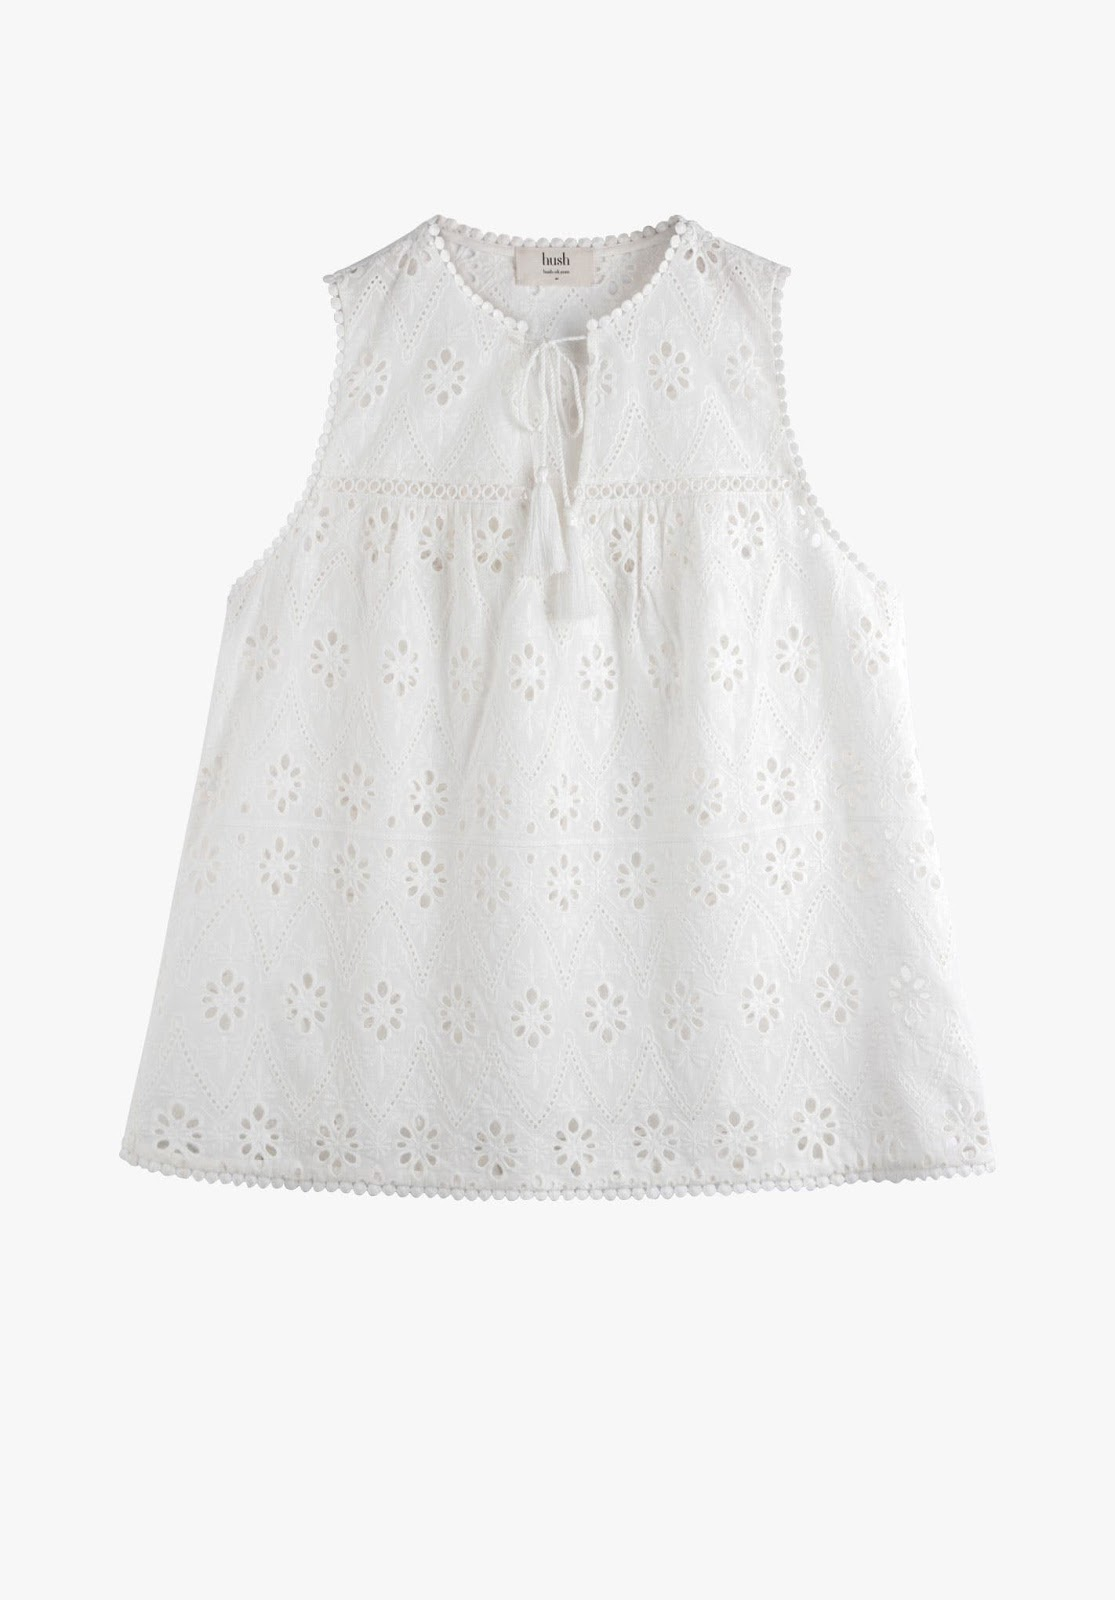 hush ledbury floral embroidered top